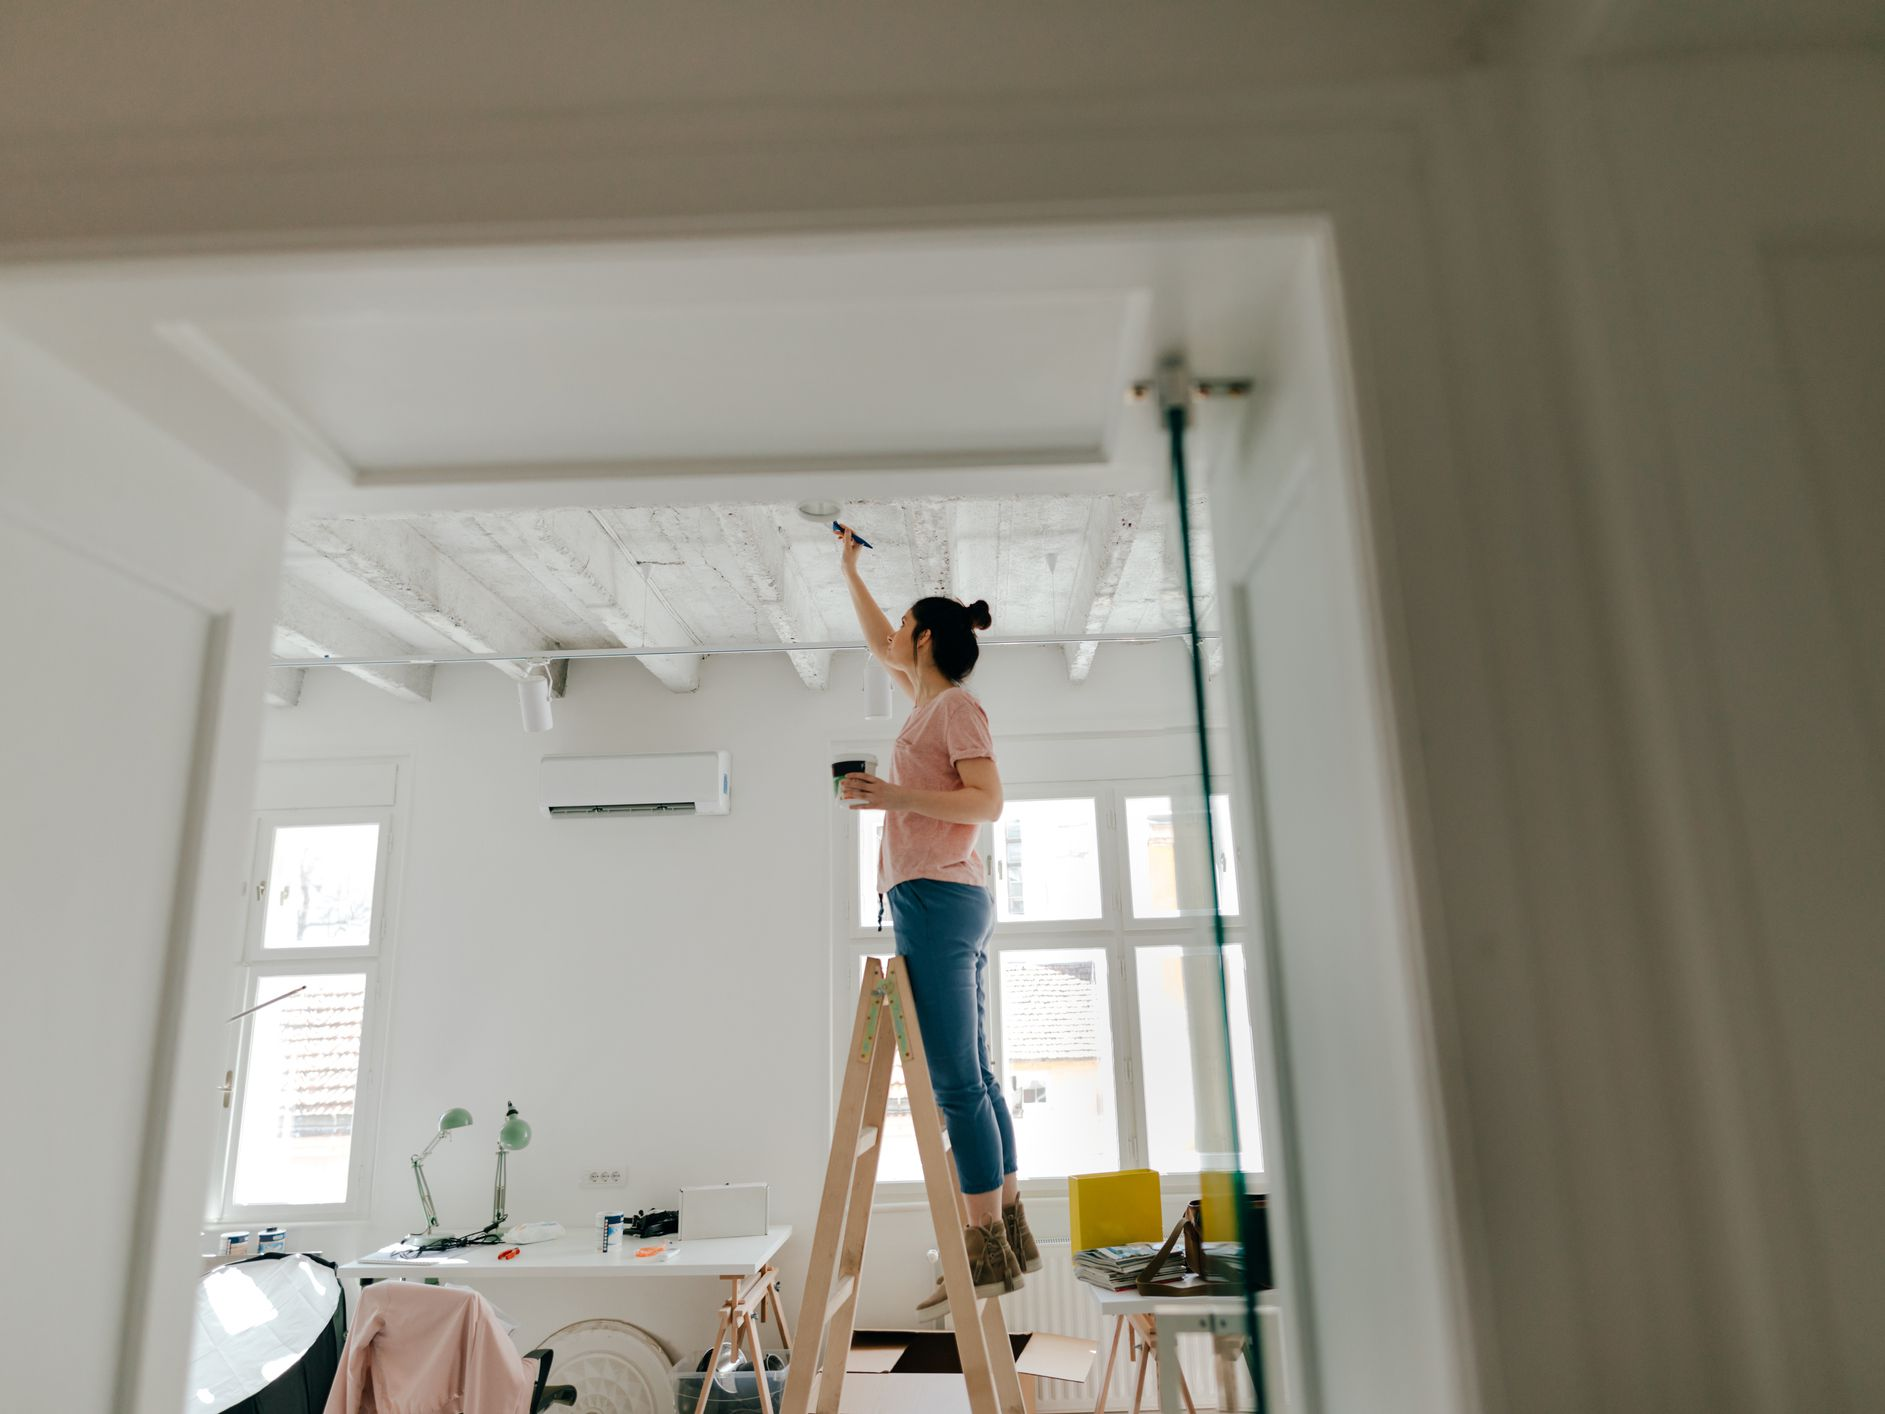 Best Ceiling Paint What To Know Before You Buy,Nancy Fuller Farmhouse Rules Cancelled